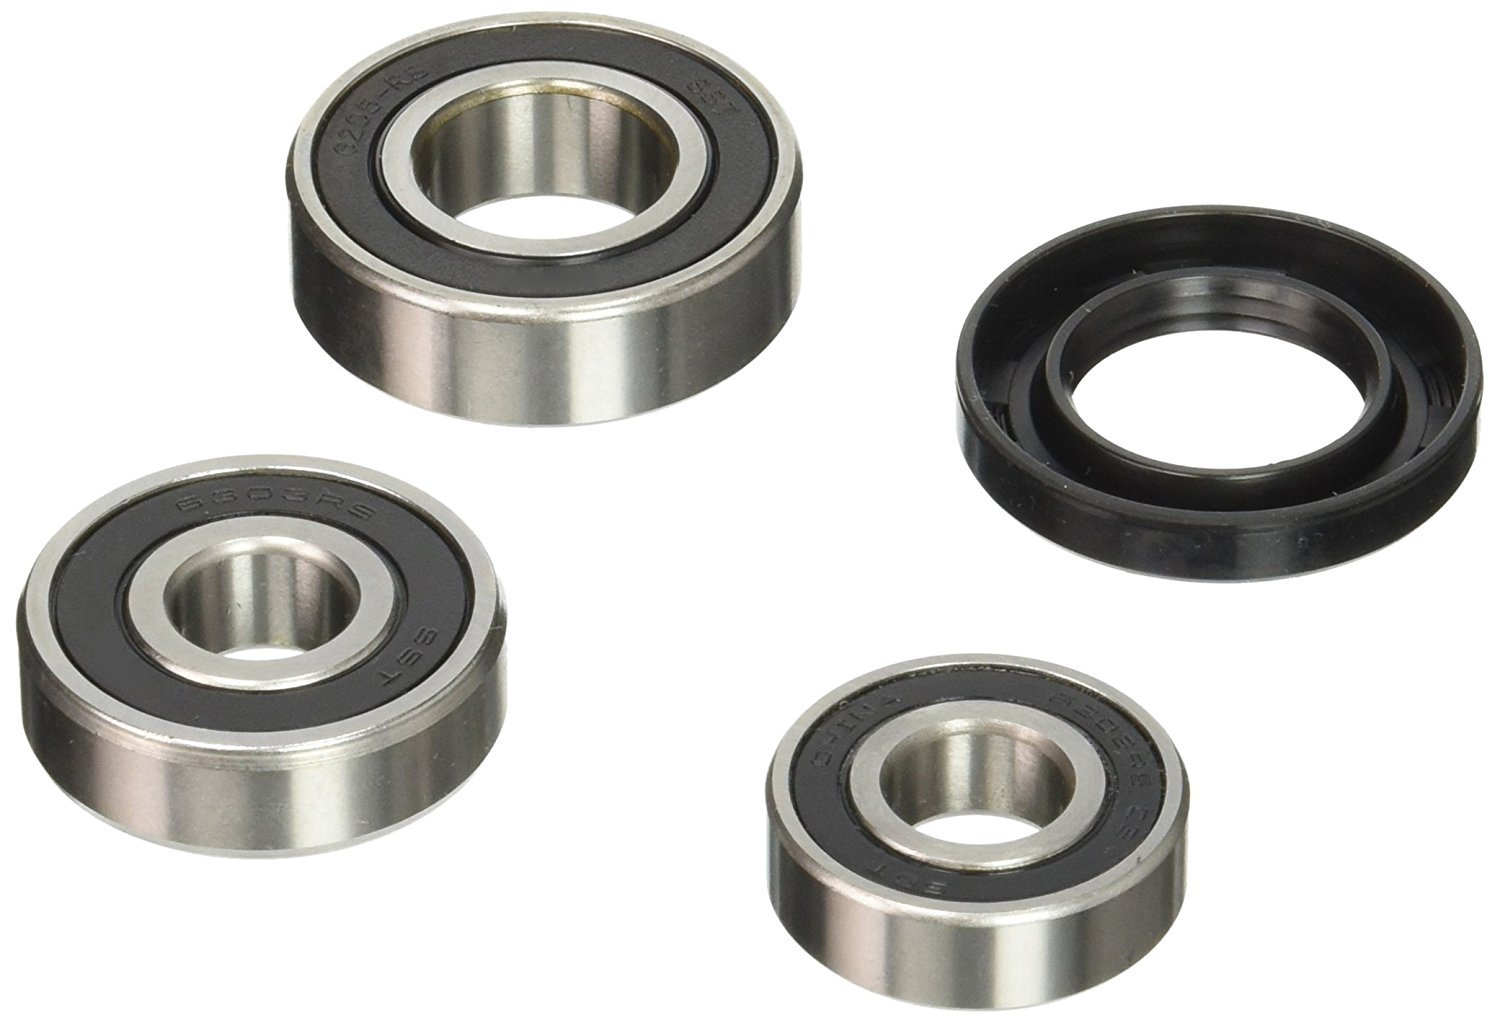 Suzuki GS550 All Models 1977-1986 Front Wheel Bearings And Seals